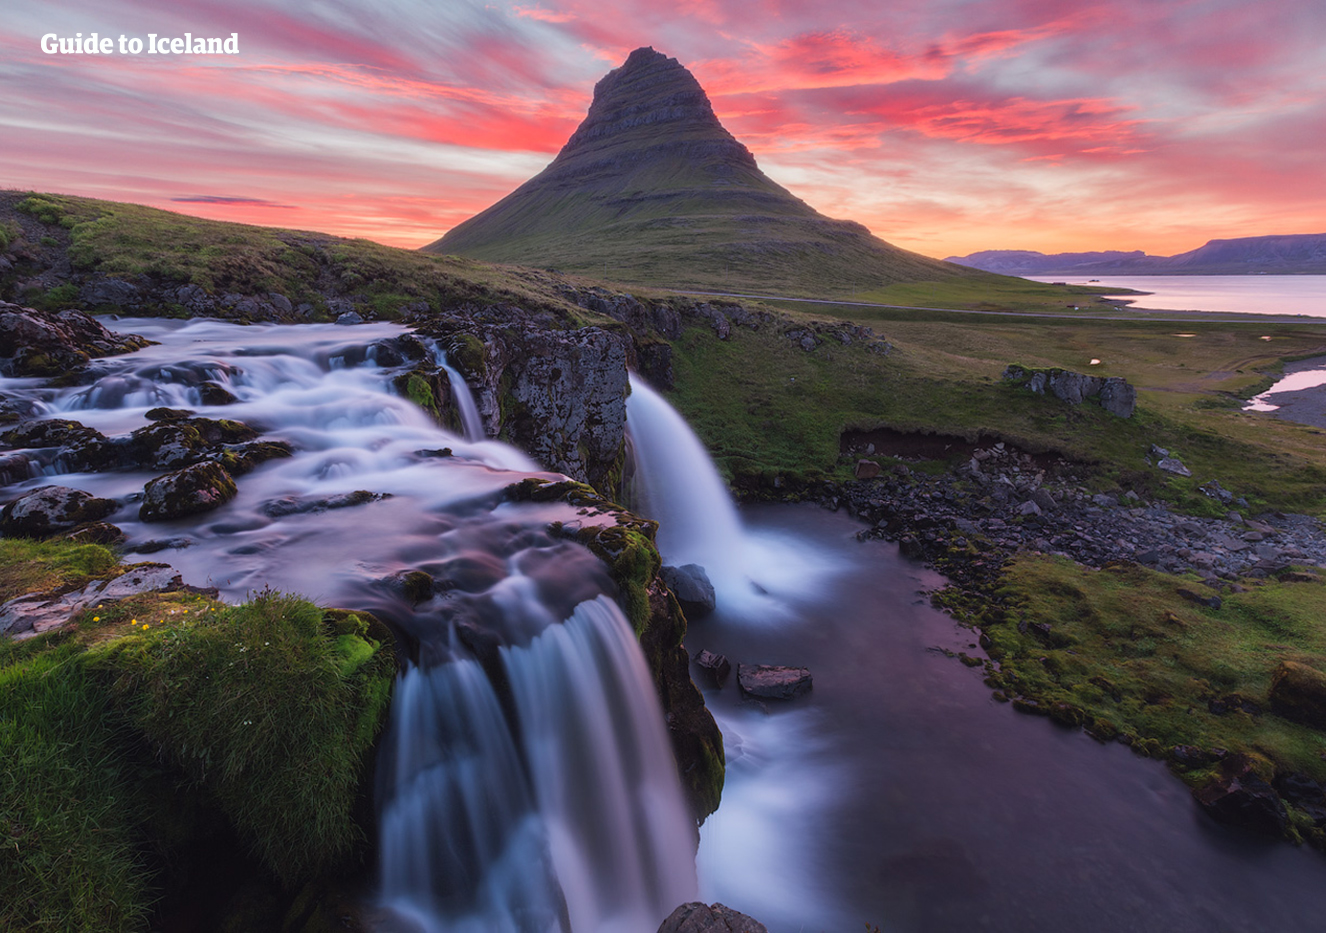 Guided 12 Day Summer Vacation Package of the Complete Ring Road of Iceland with Snaefellsnes Peninsu - day 9